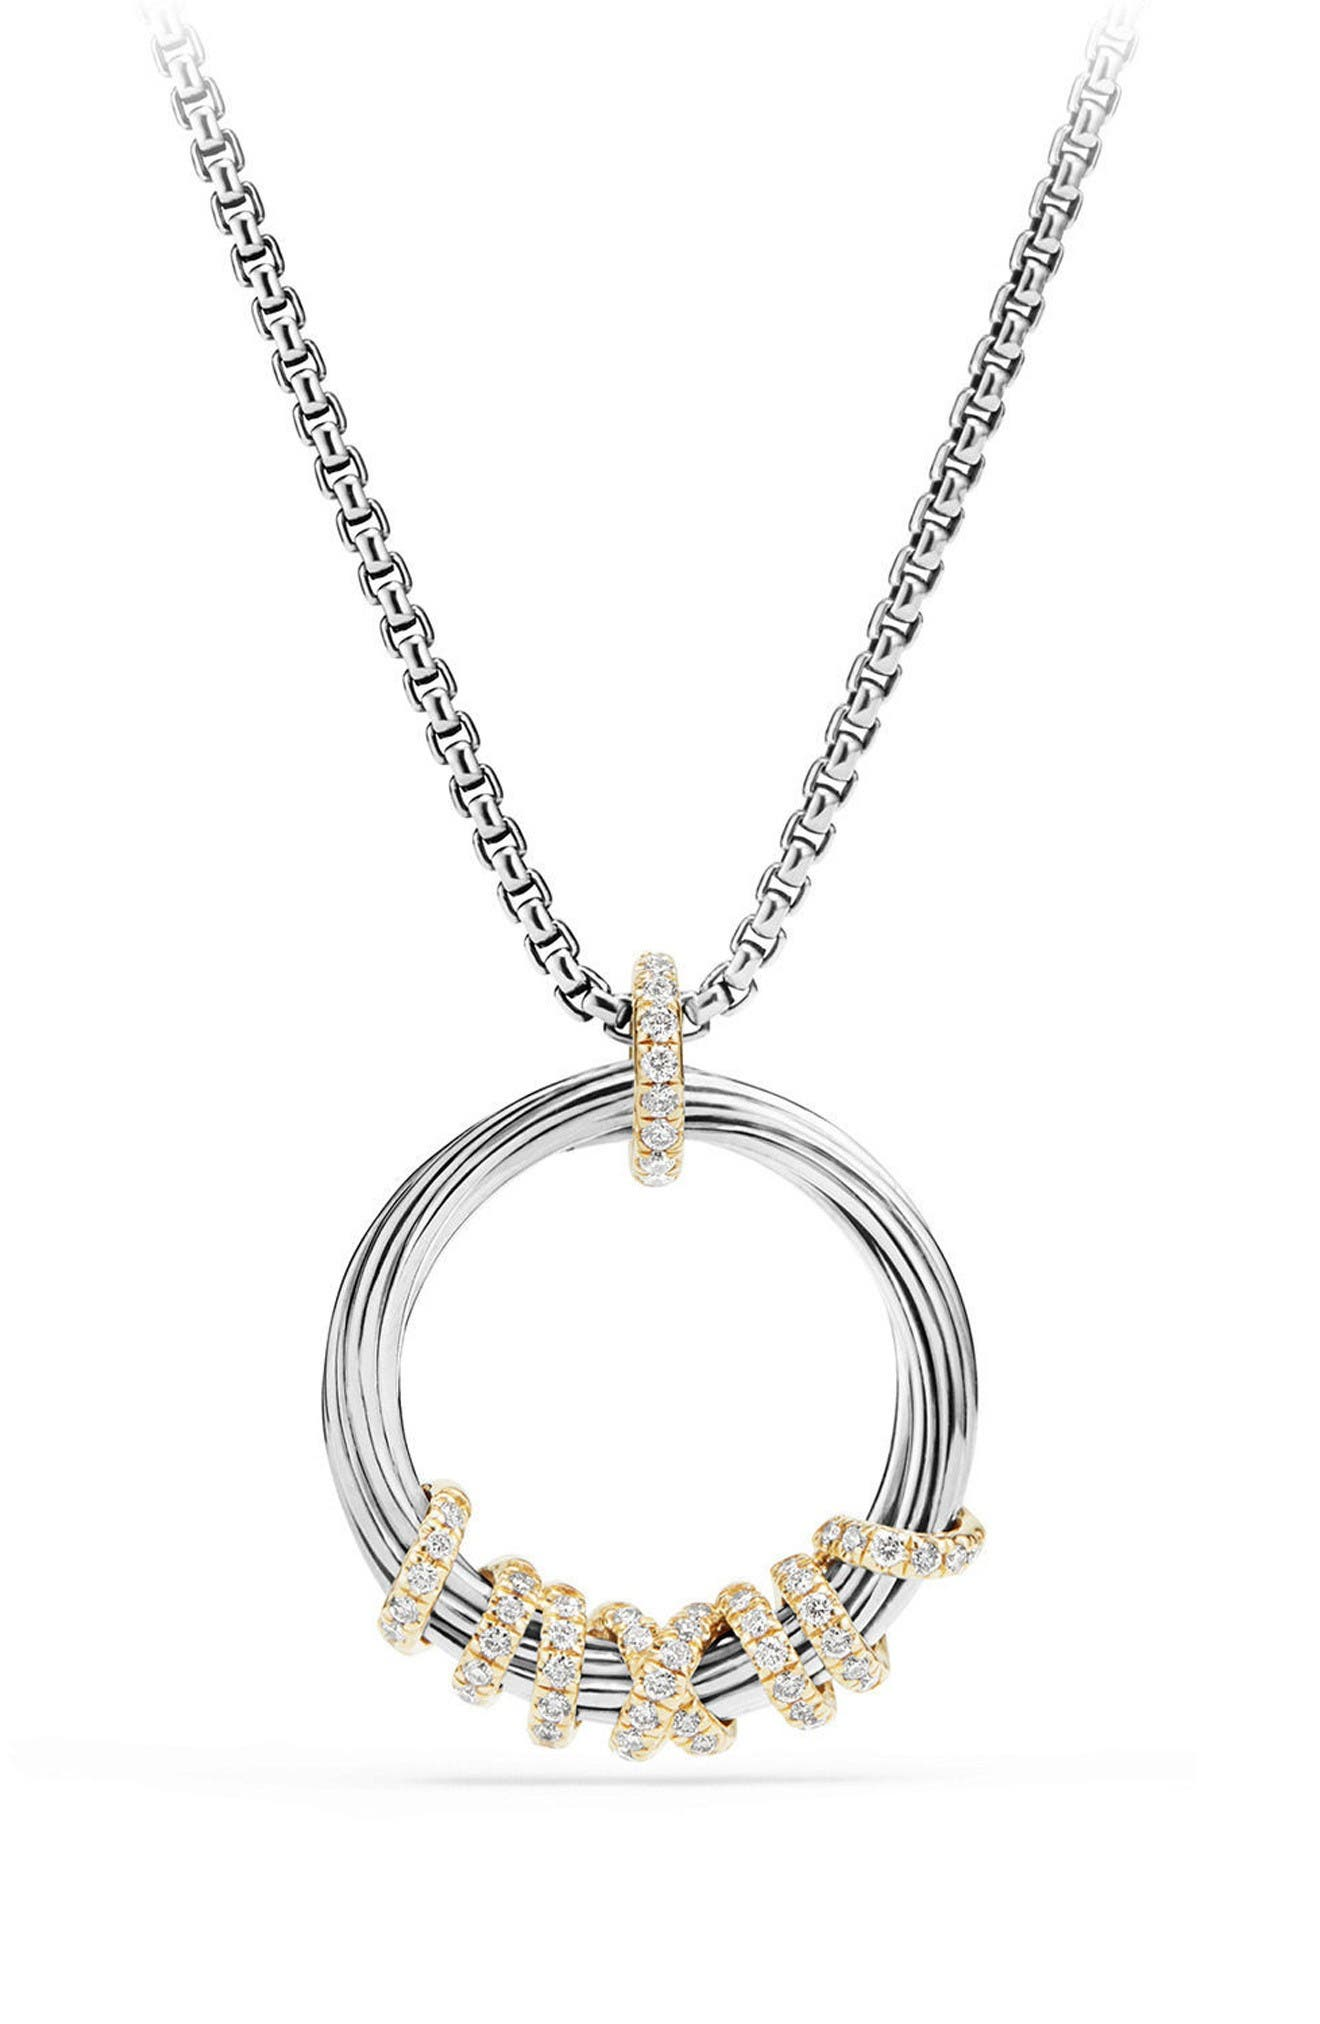 Helena Medium Pendant Necklace with Diamonds & 18K Gold,                         Main,                         color, Silver/ Gold